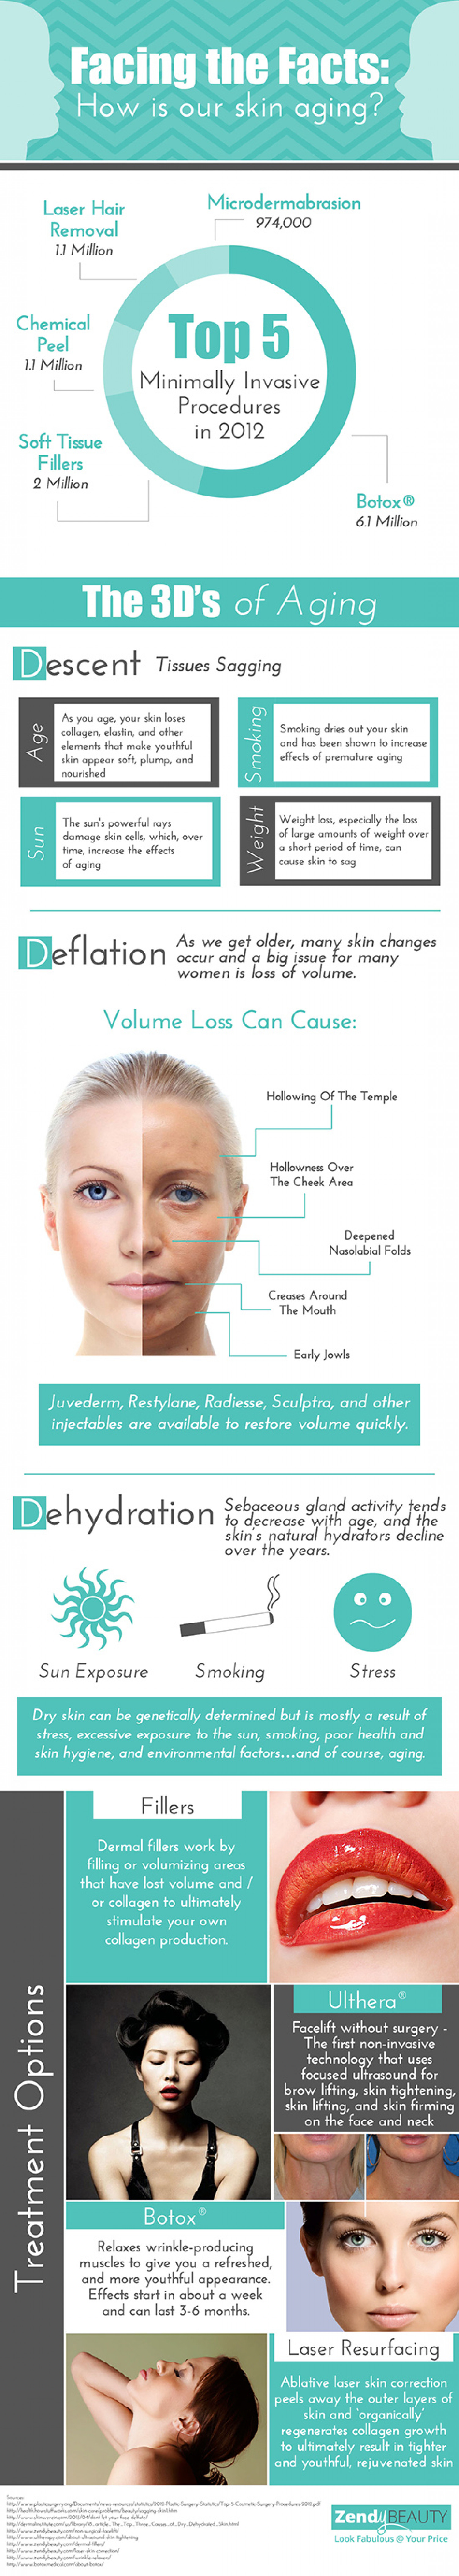 Facing the Facts: How is Our Skin Aging Infographic